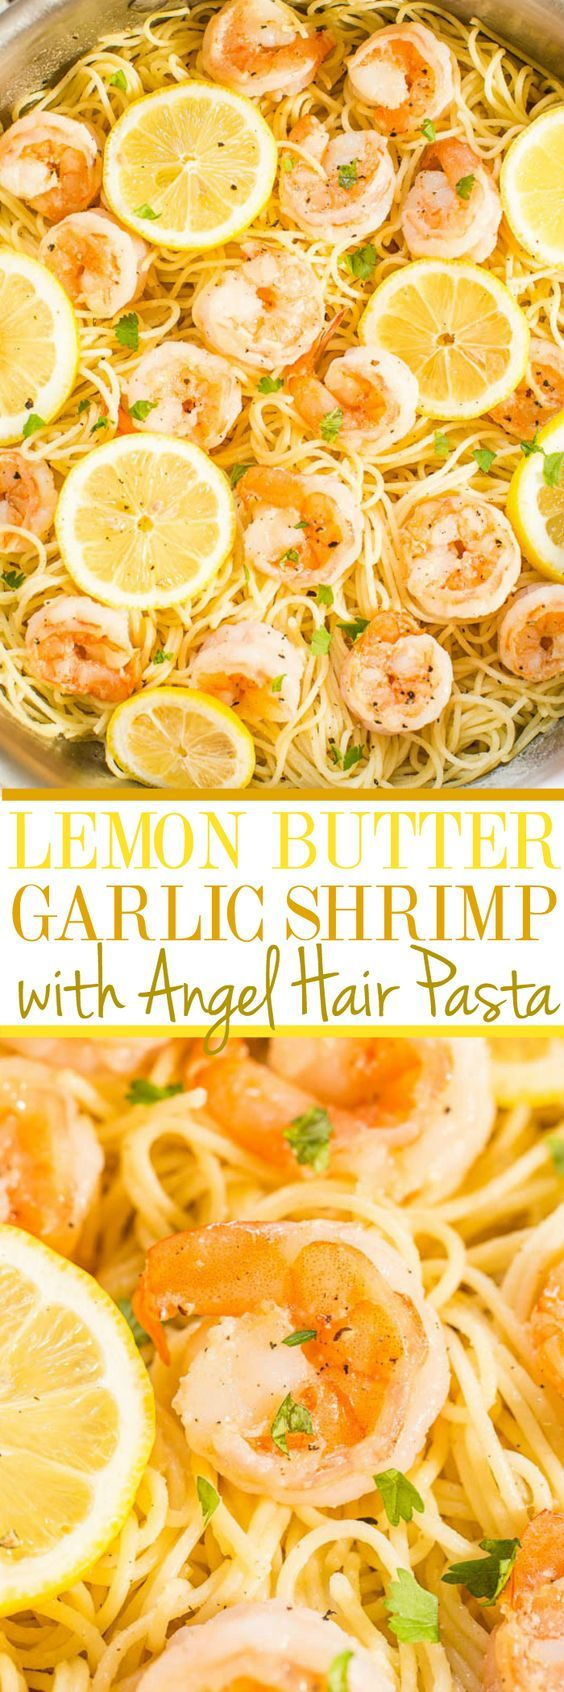 Lemon Butter Garlic Shrimp with Angel Hair Pasta - Easy and ready in 15 minutes! Big lemon flavor, juicy shrimp, and buttery noodles all in one dish everyone will love! A healthy weeknight dinner for those busy nights!! (Lemon Butter Pasta)